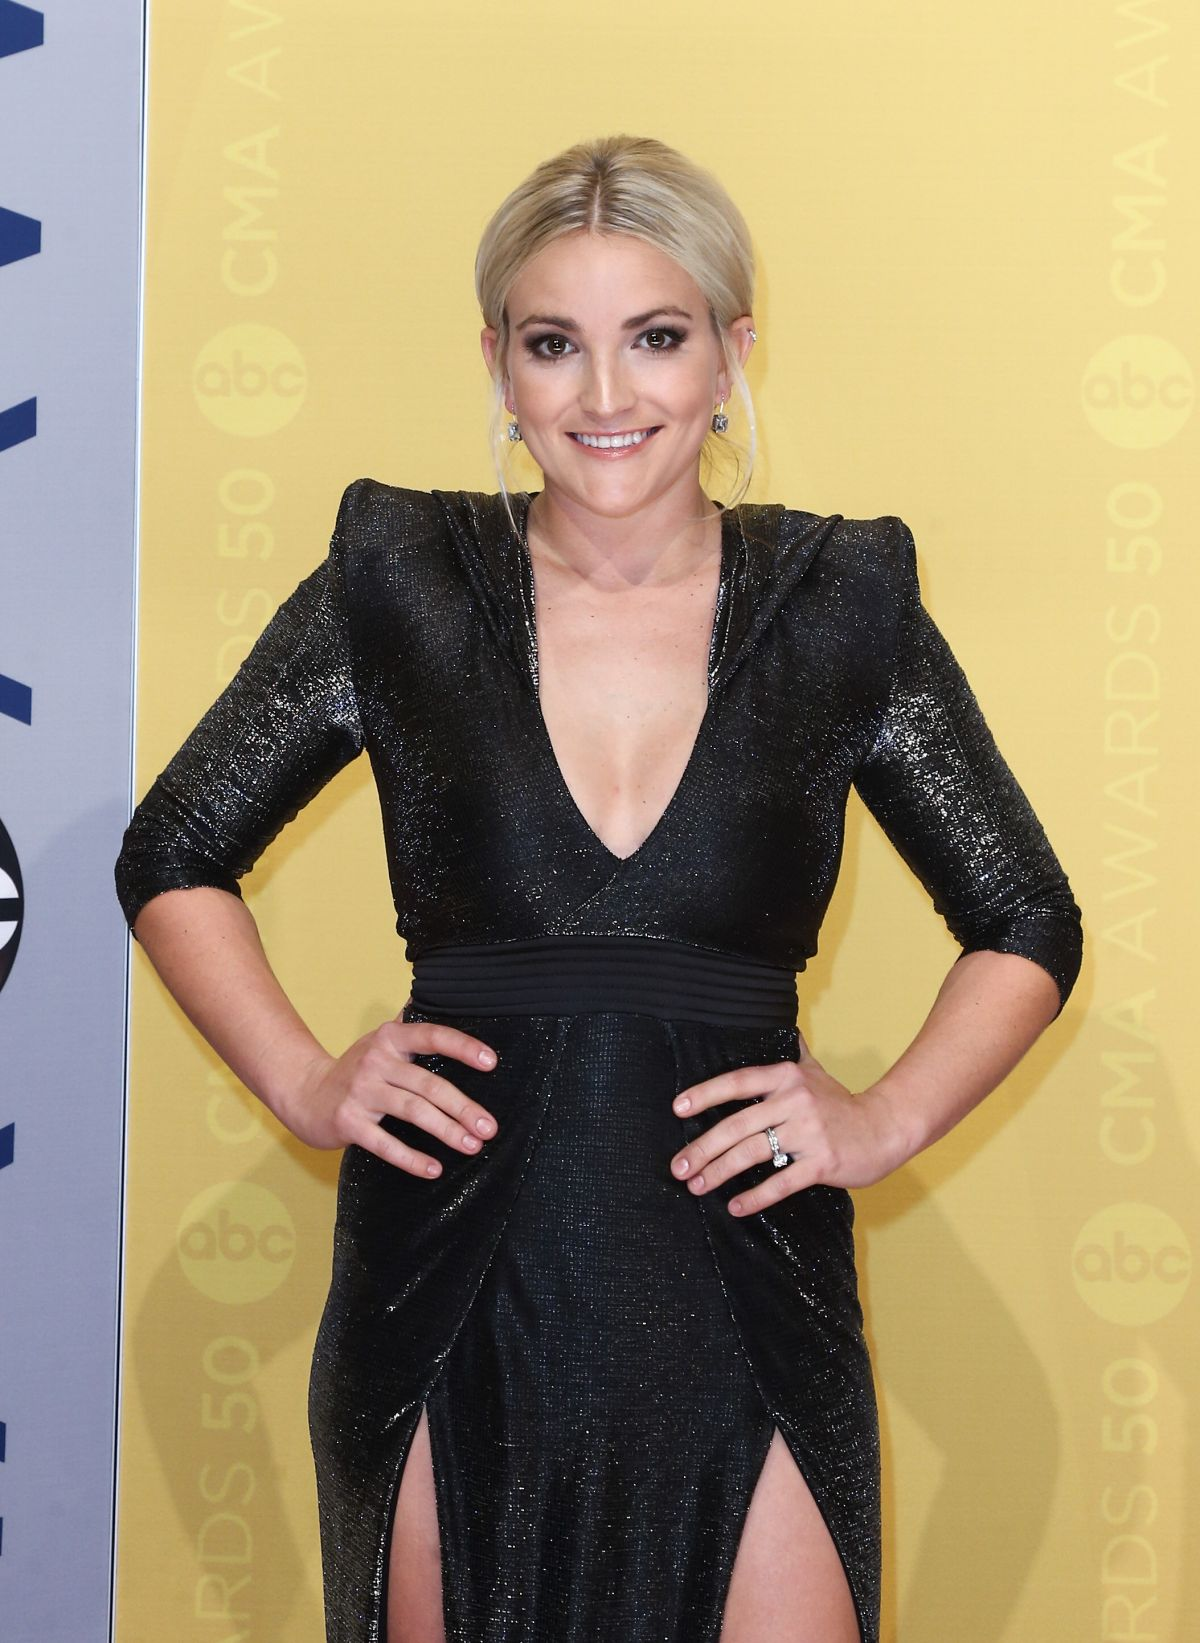 jamie lynn spears wikipedia